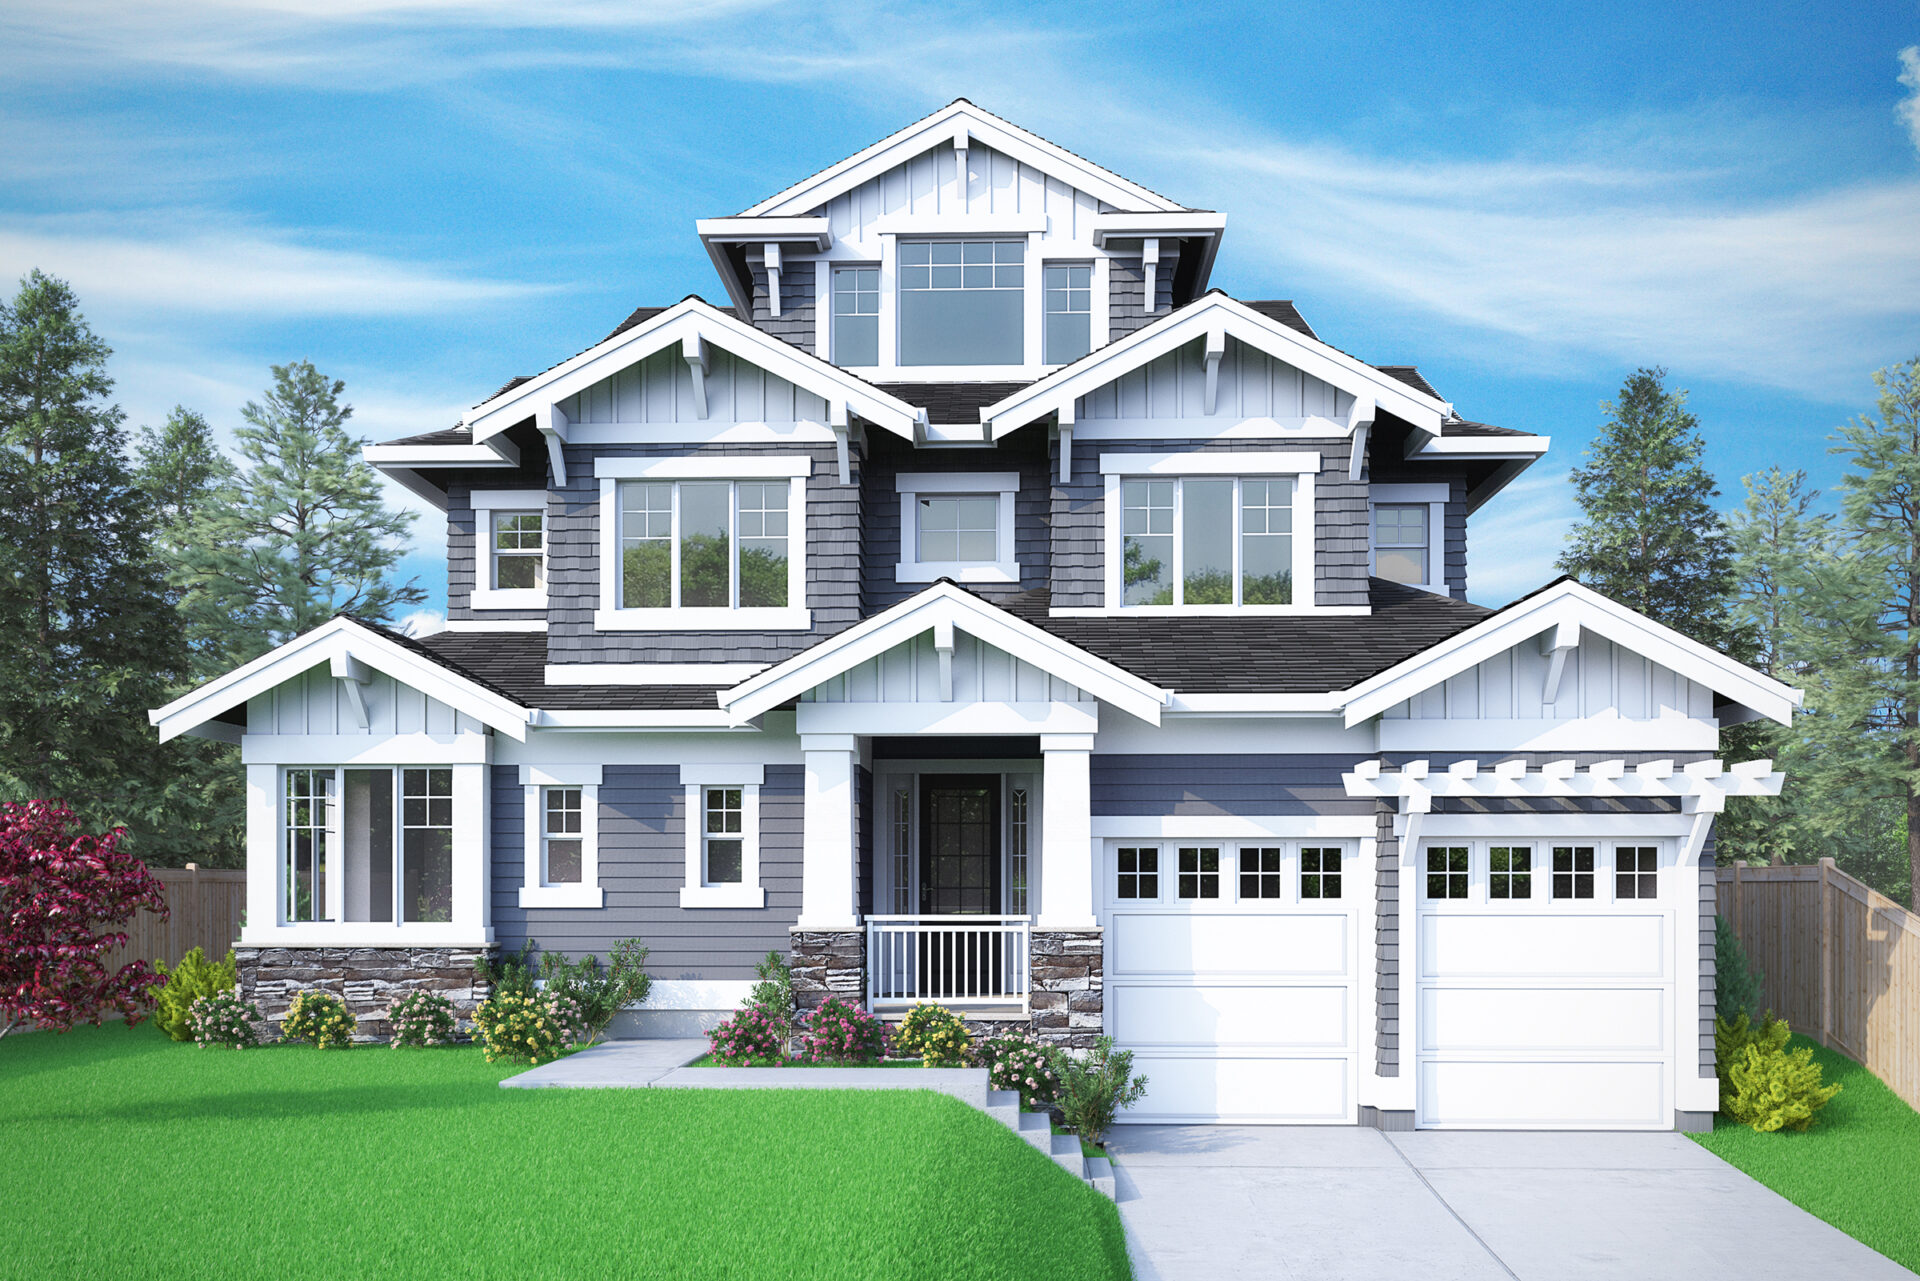 View our new luxury home construction on 10633 NE 18th St, in Bellevue, WA from MN Custom Homes